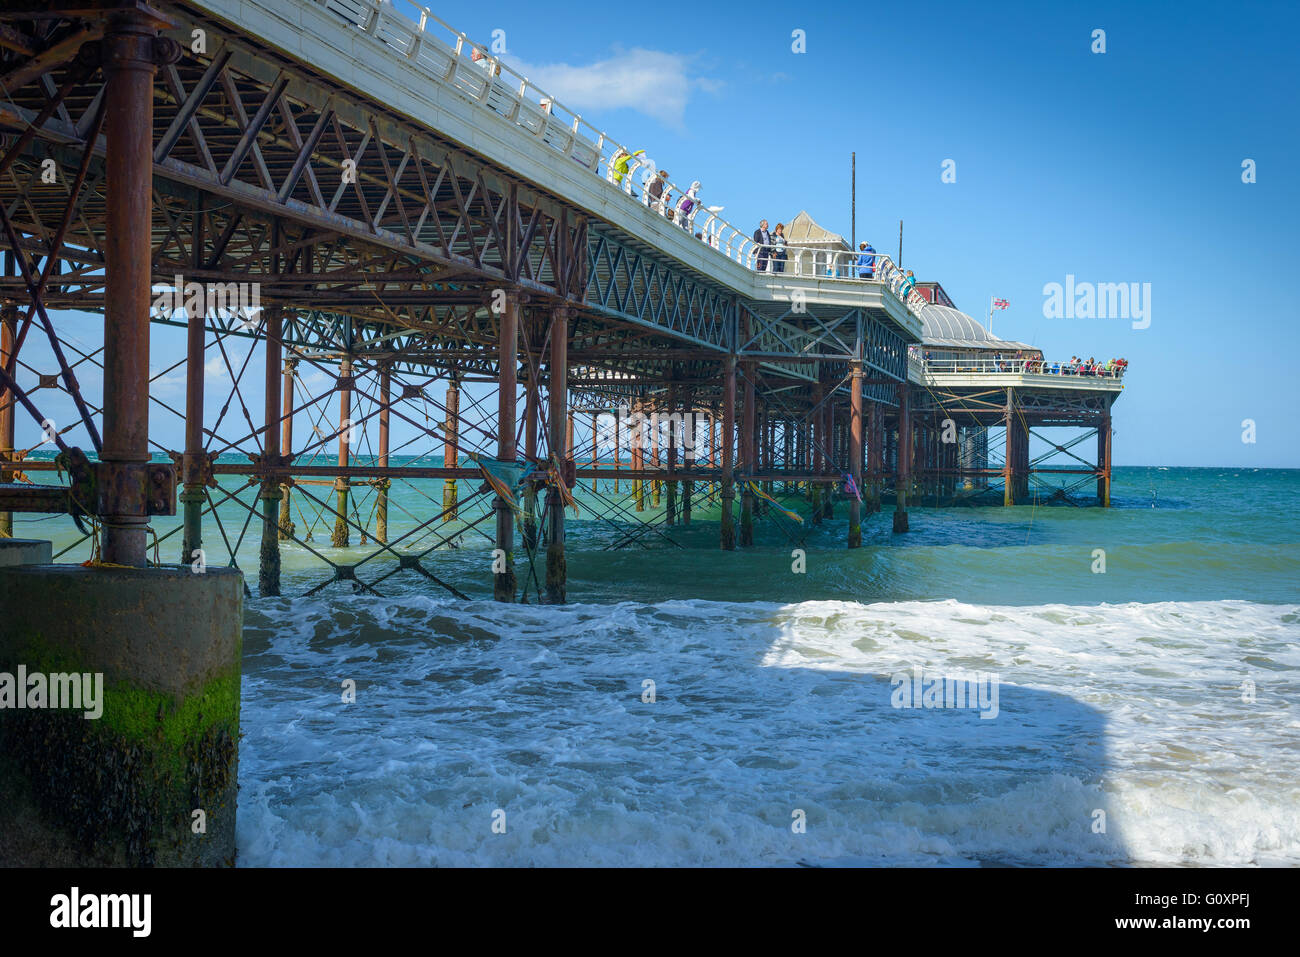 Cromer Pier expands out to sea on the Norfolk Coast, England - Stock Image